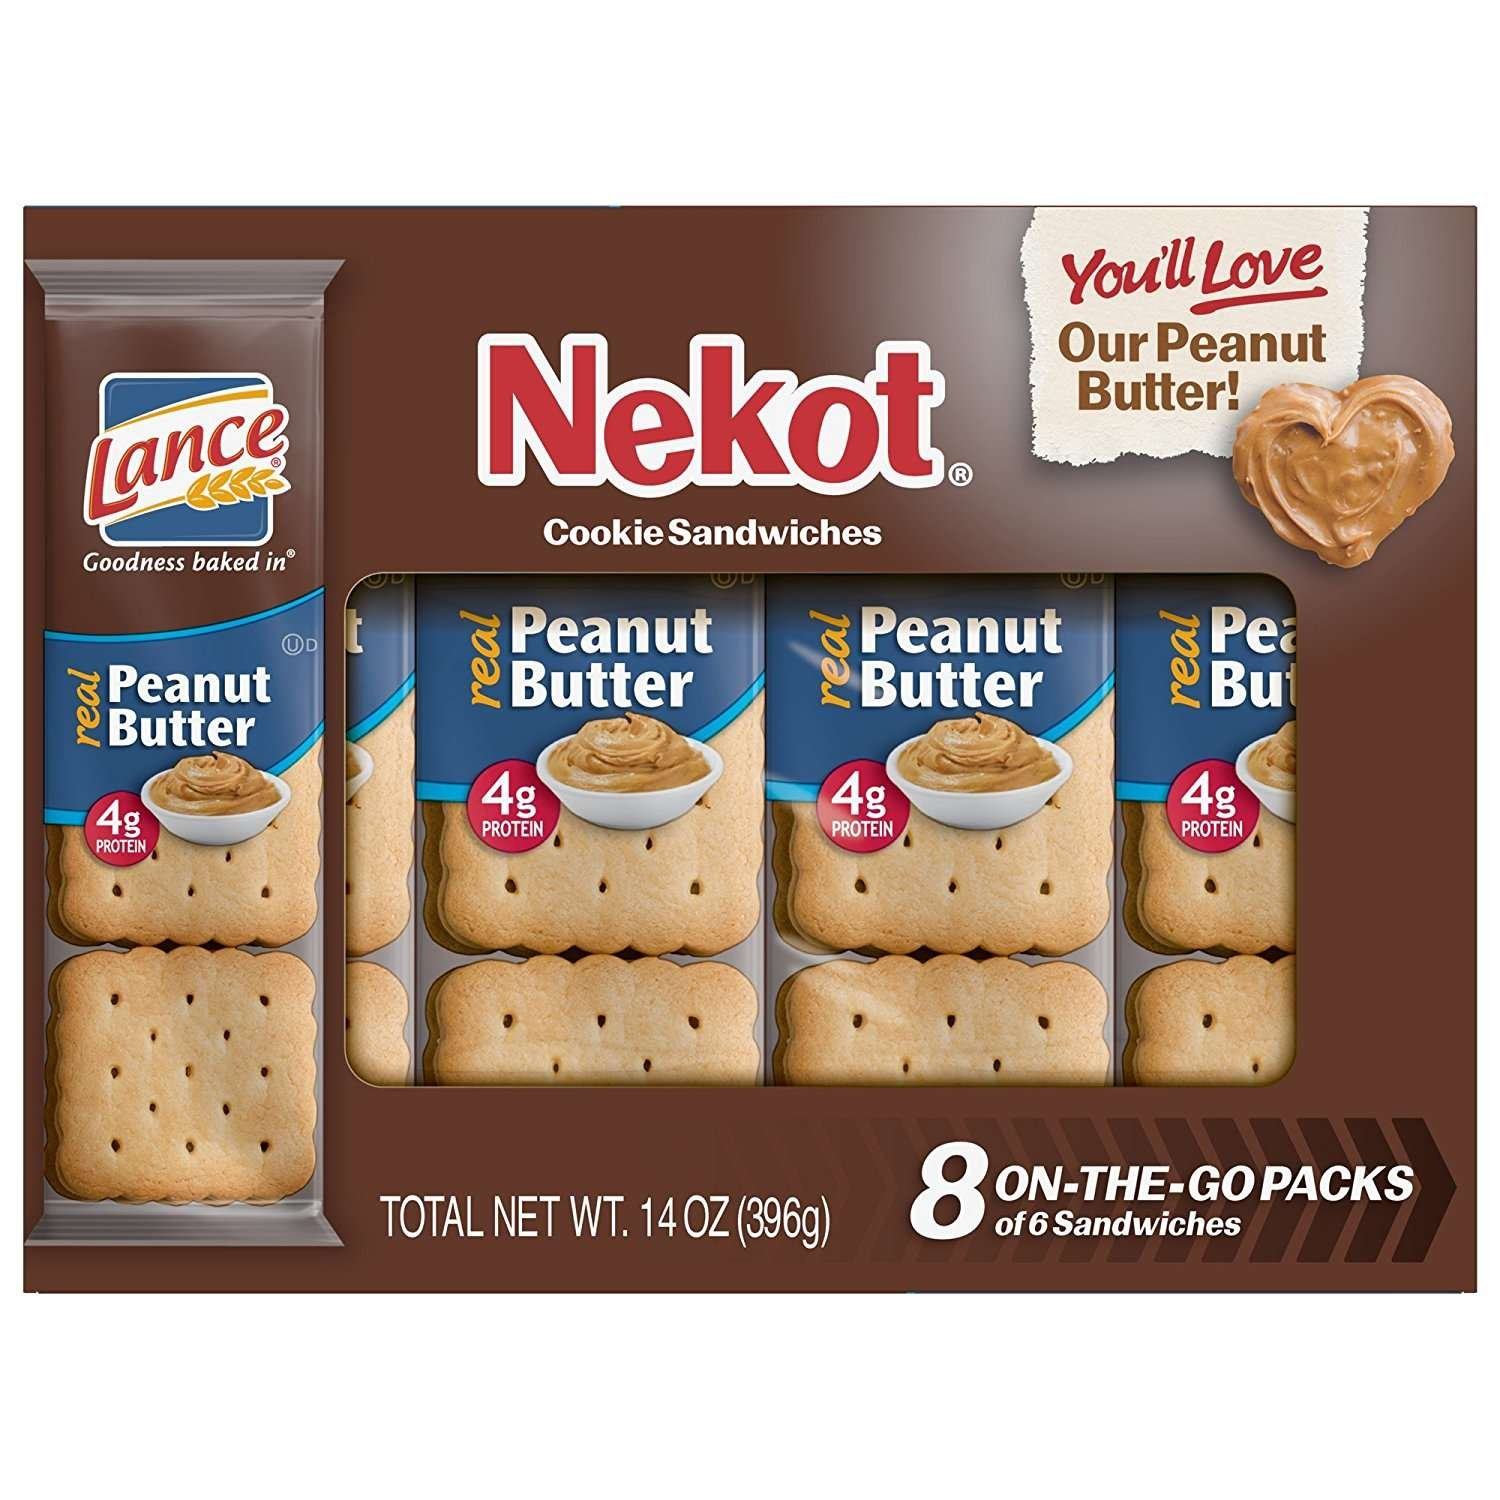 Lance Nekot Peanut Butter Cookie Sandwiches, 8-Count Boxes (Pack of 14)